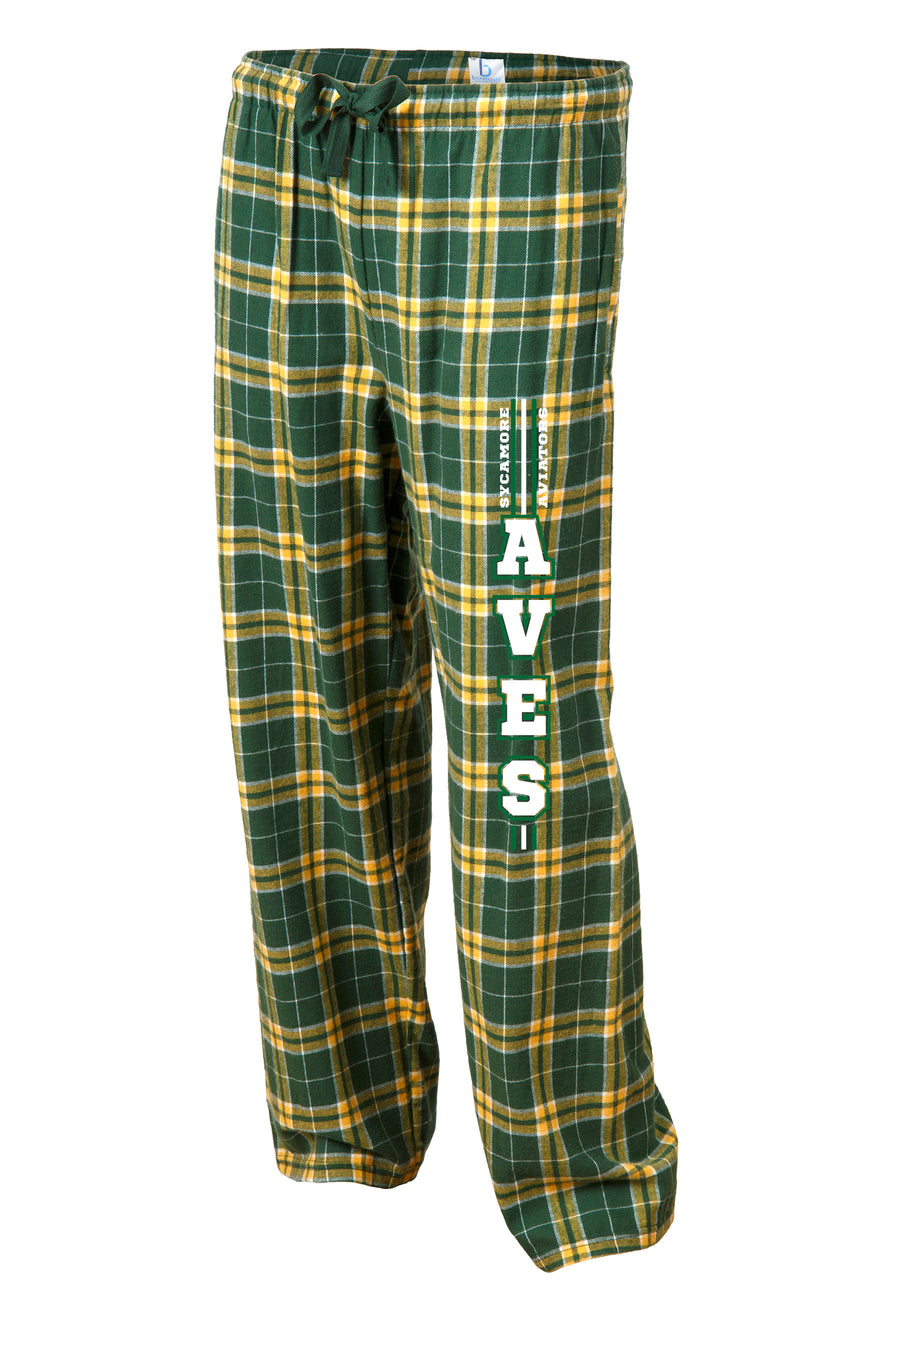 Flannel Lounge Pant in Green + Gold Plaid